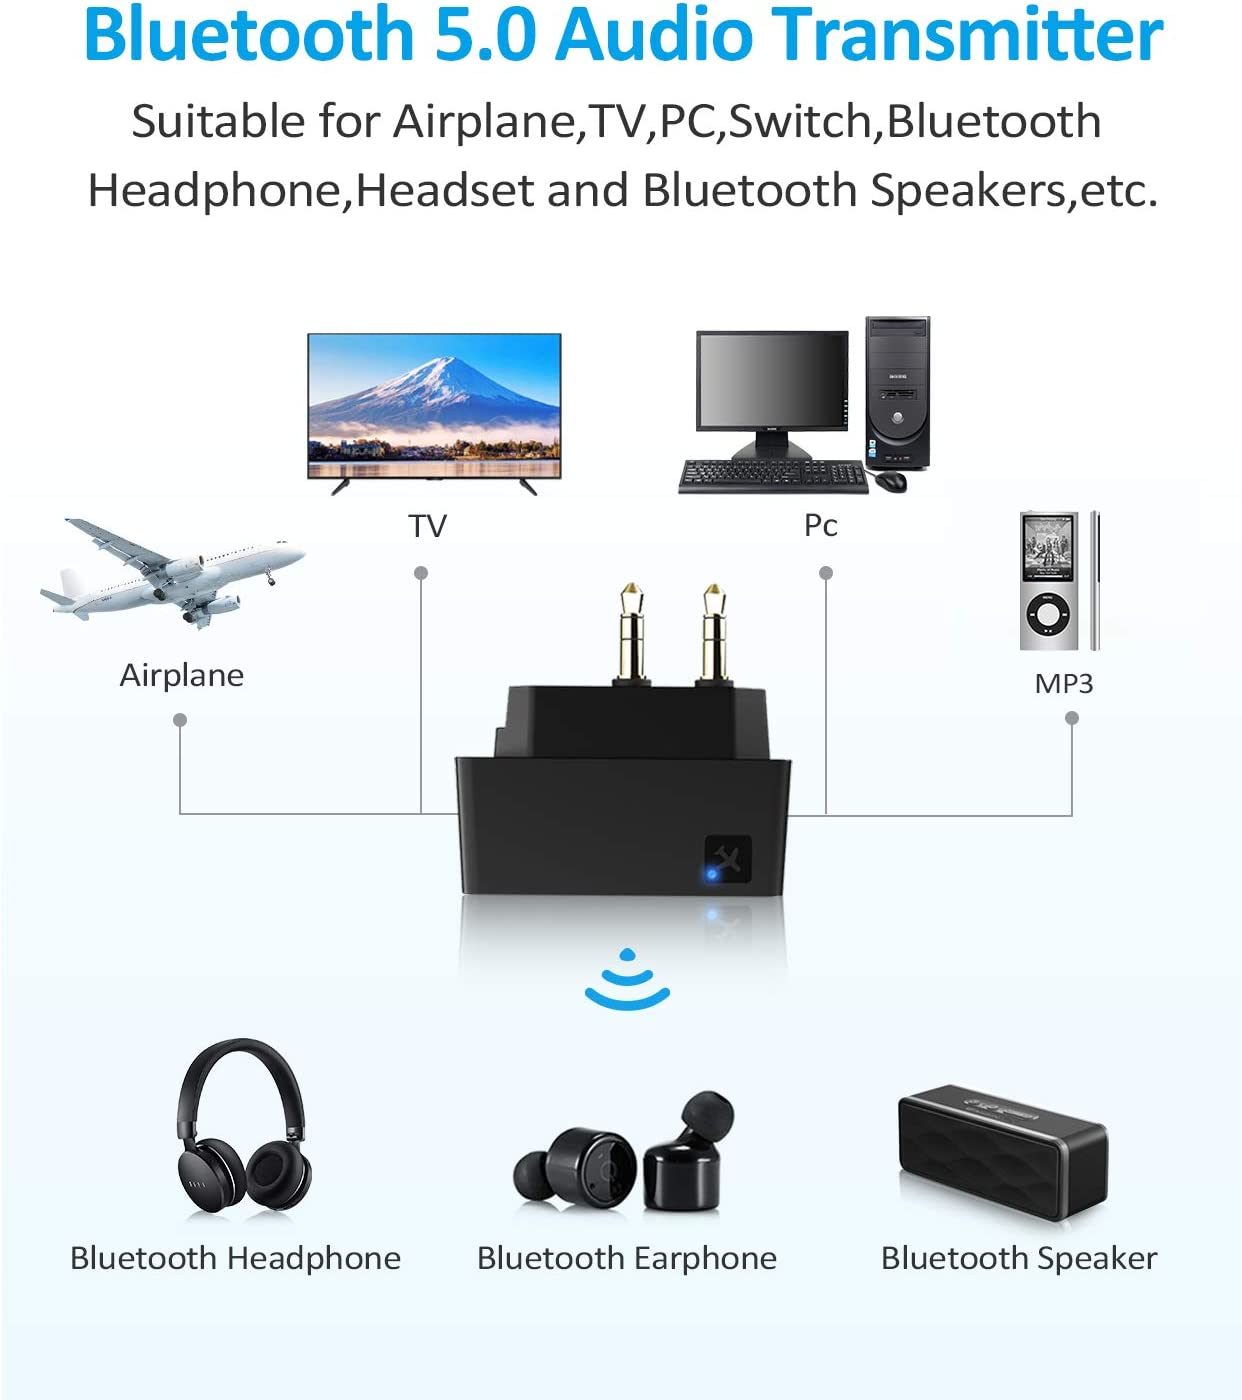 Wireless Airfly Bluetooth Audio Transmitter Adapter for TV Airplanes PC with Dual 3.5mm Jack for Bluetooth Headphone//Earphone//Receiver//Speaker ZIOCOM Bluetooth Flight Transmitter